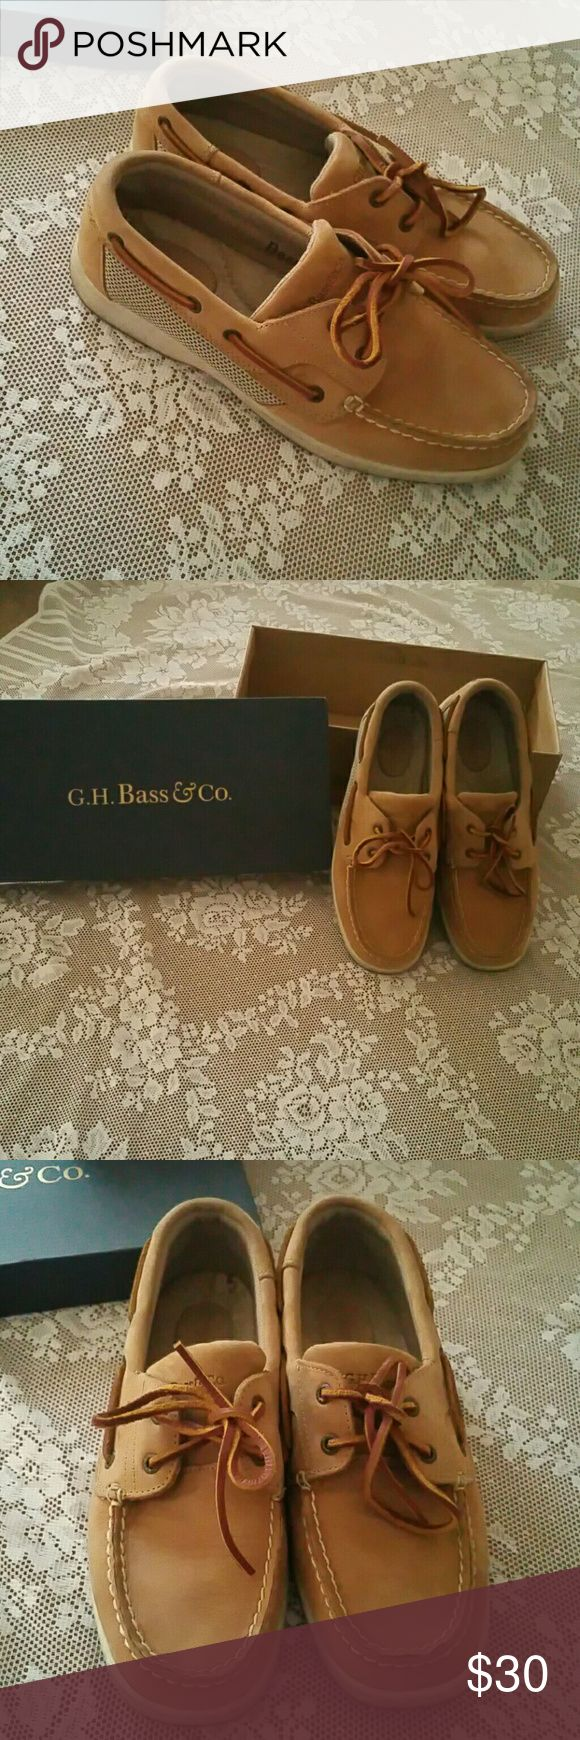 """Bass leather Boat shoes Excellent condition.  Plenty of life left. Bass tan leather Boat shoes. Sz 7.5 style is """"sailer"""". Can ship with box but it's not the original box Bass Shoes Flats & Loafers"""